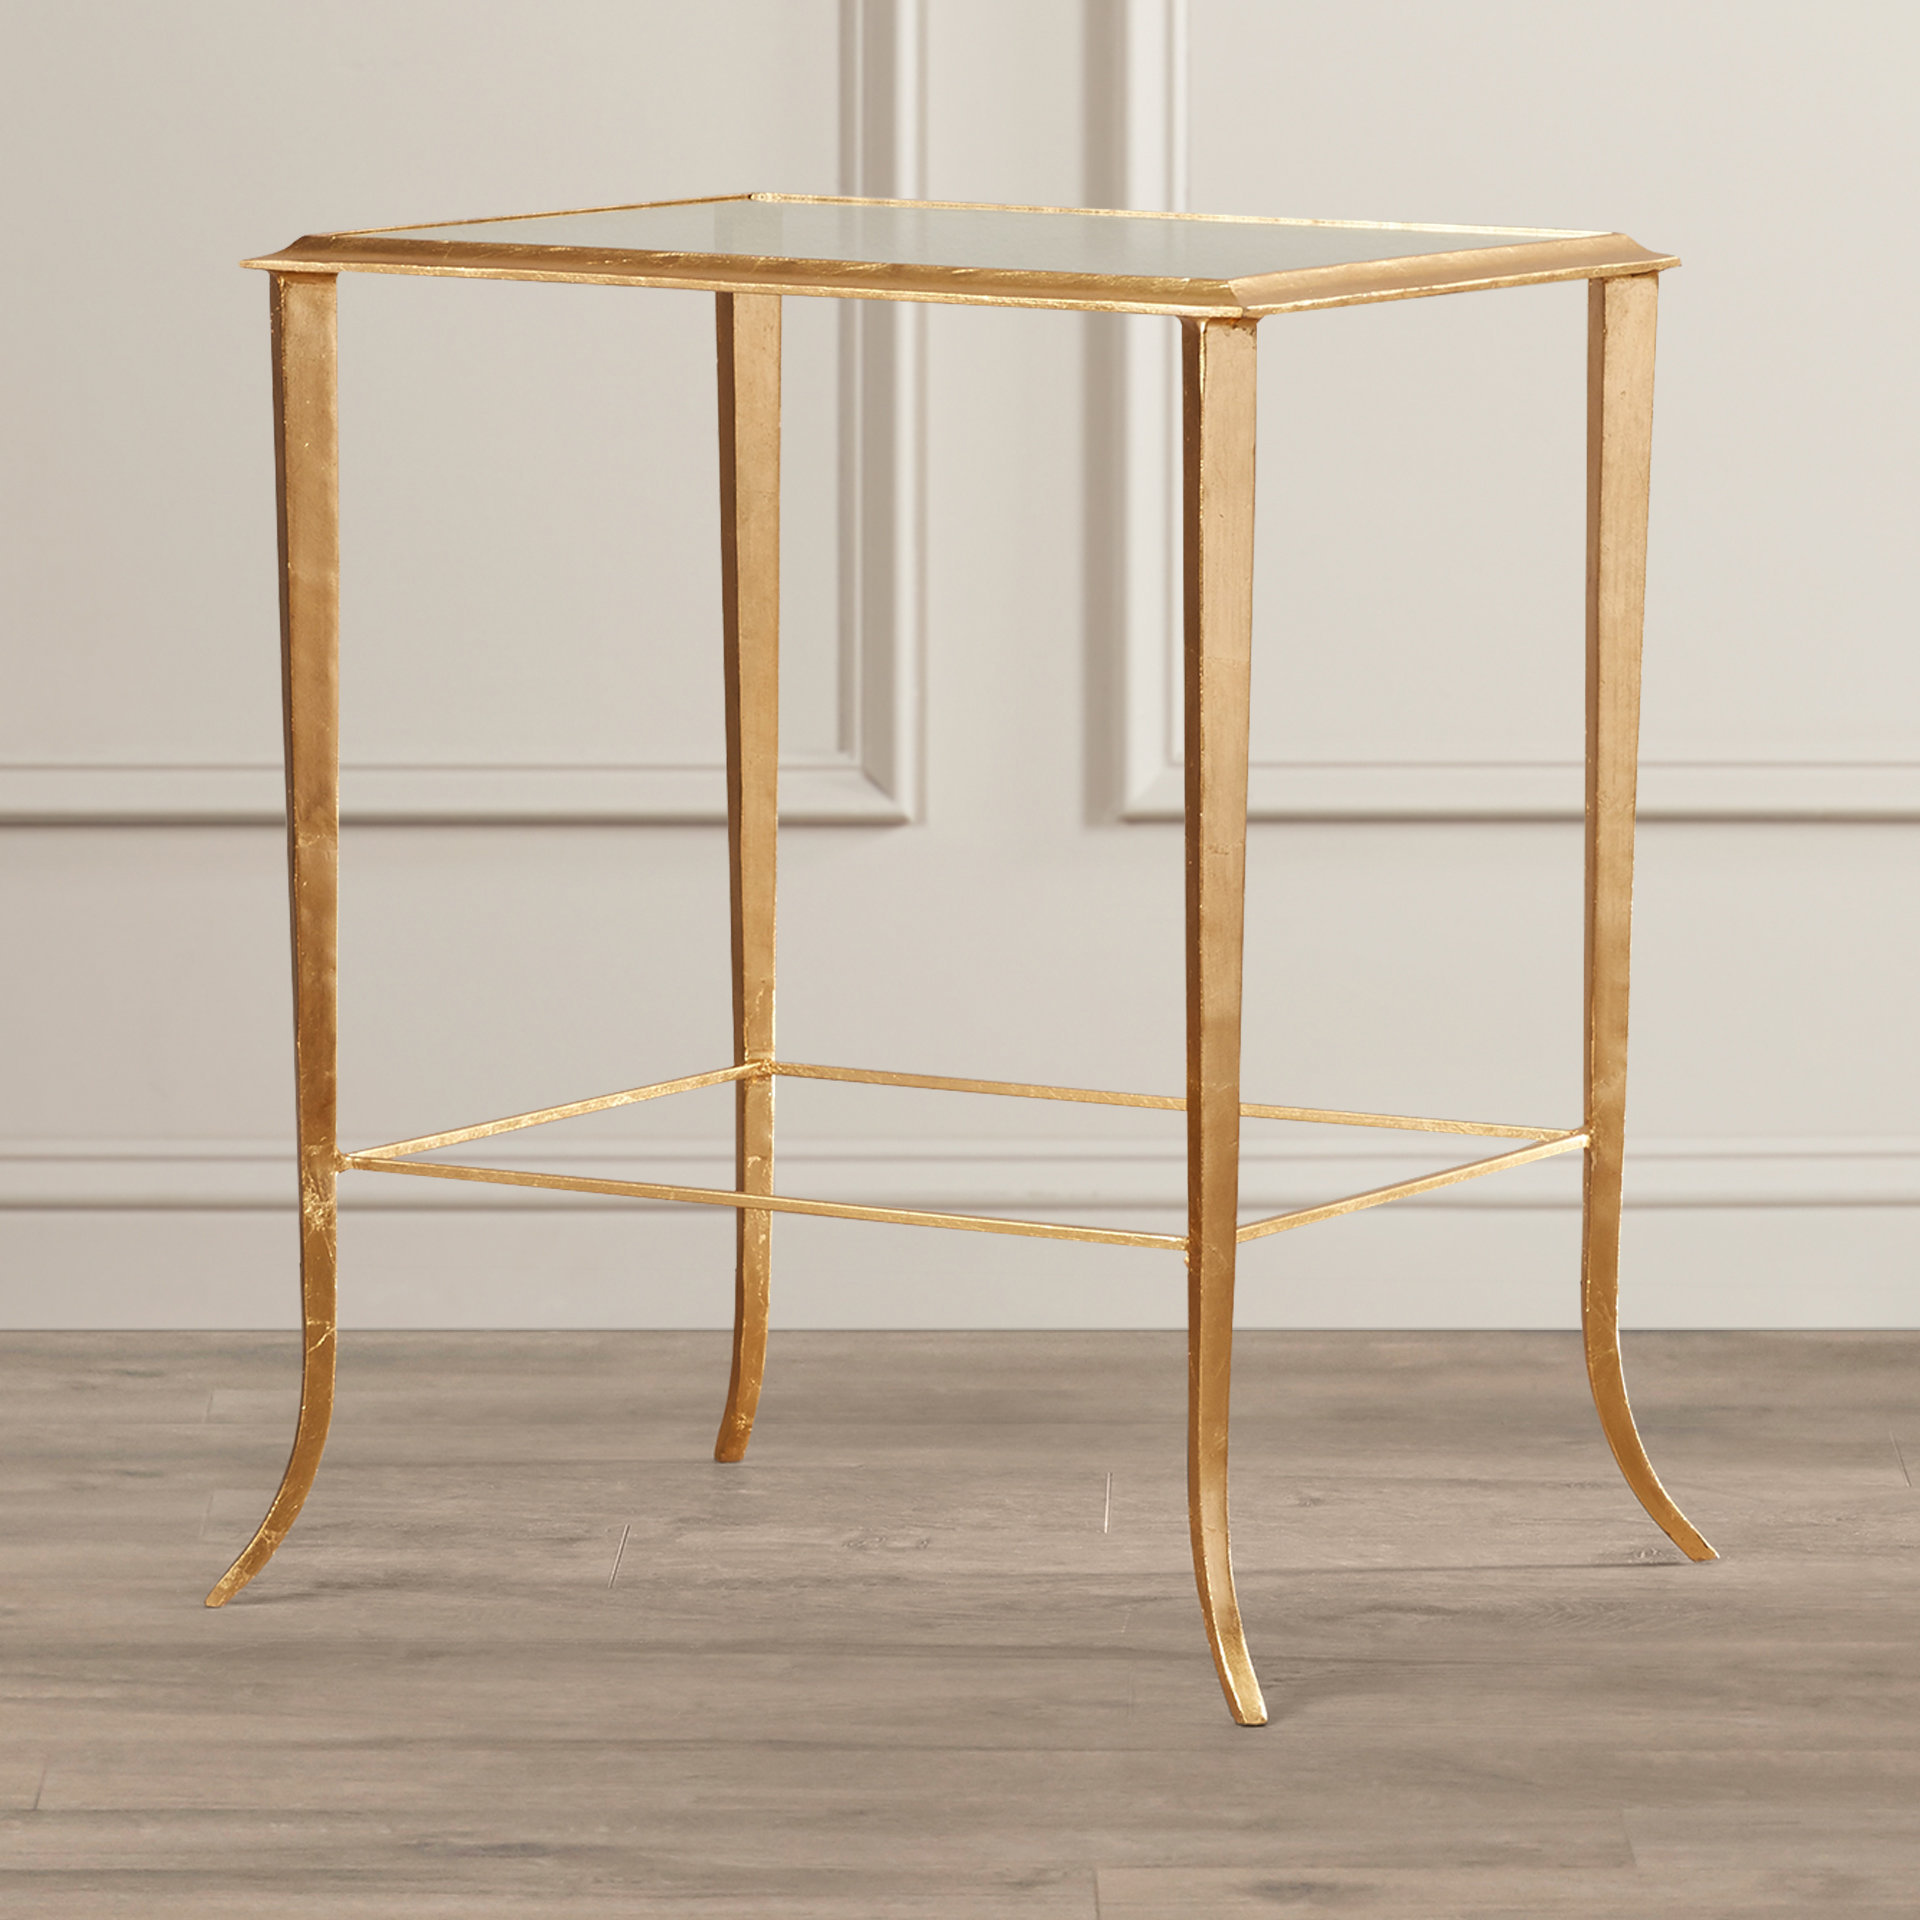 willa arlo interiors rayne end table reviews hawthorne glass top accent gold with marble outdoor wood dining concrete bench seat bunnings light fixtures tripod lamp hold back